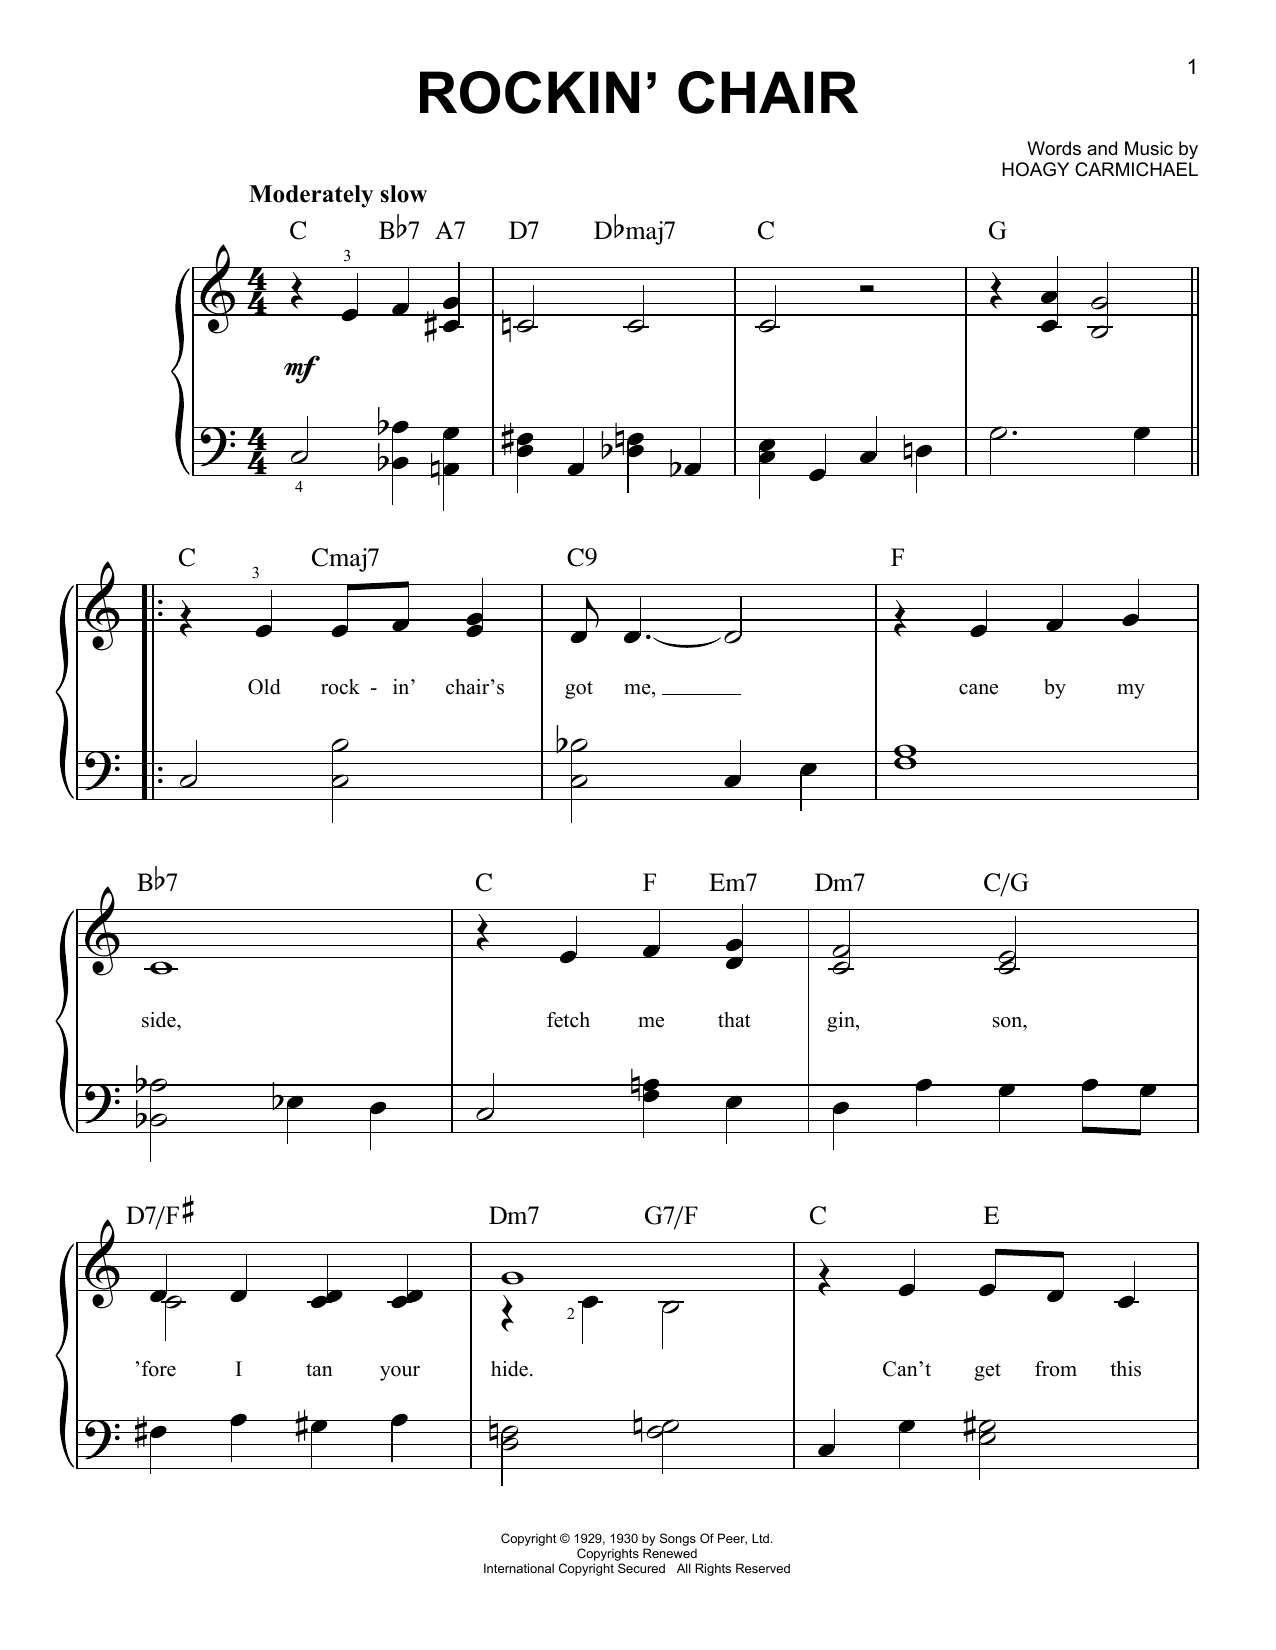 Hoagy Carmichael Rockin' Chair sheet music notes and chords. Download Printable PDF.